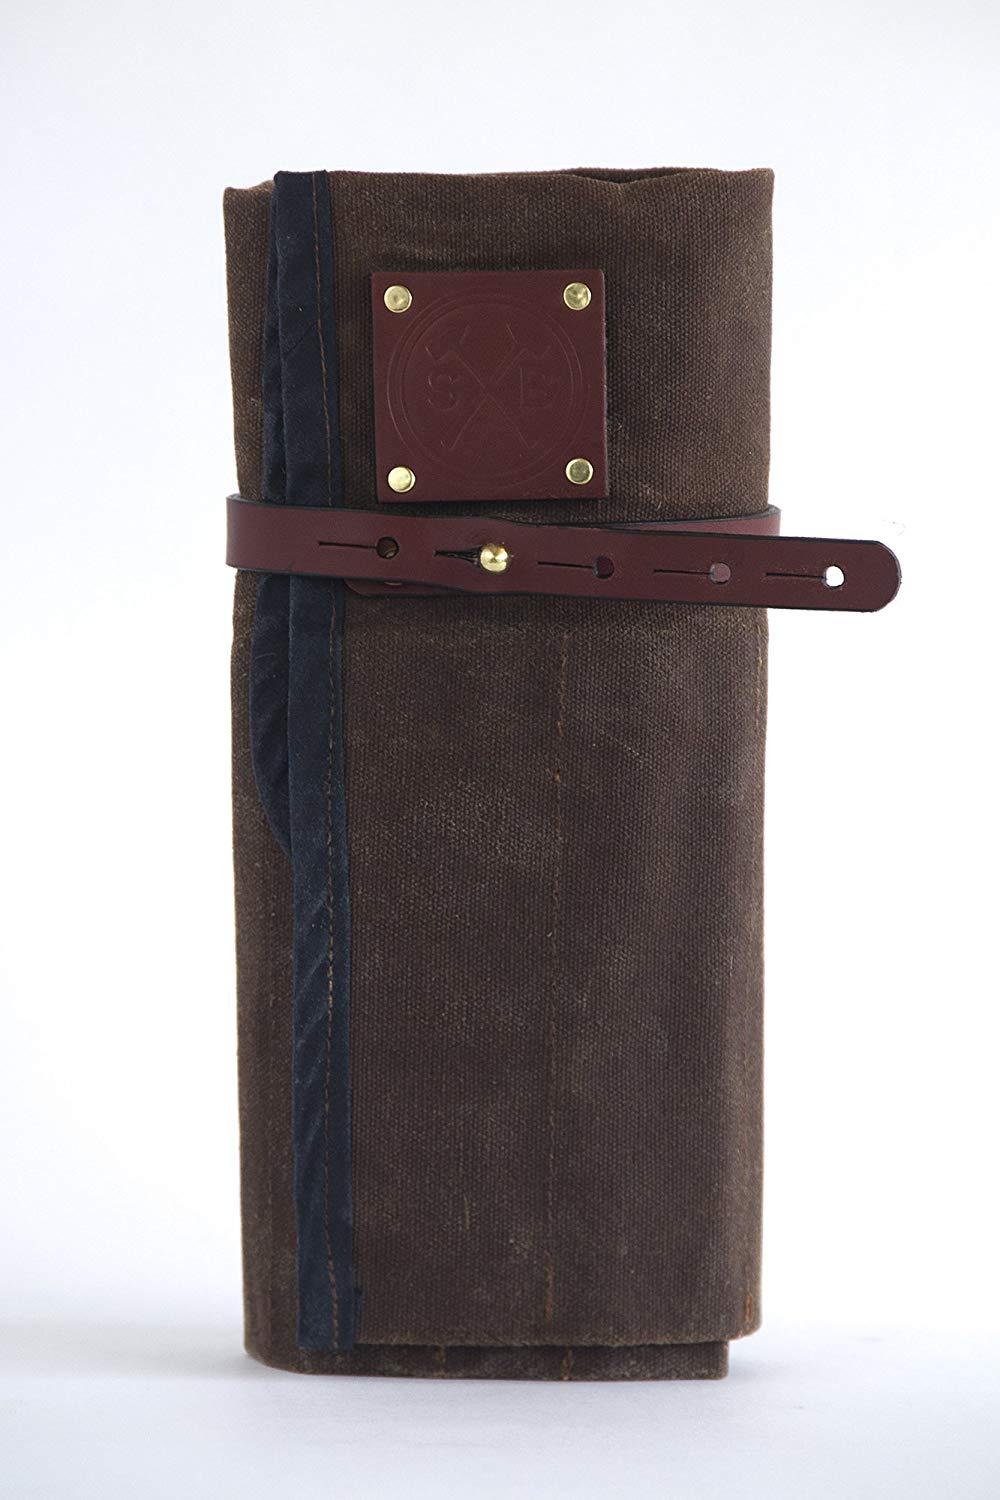 Waxed Canvas and Leather Tool Roll Up Bag - Carpenter, Woodworking, Mechanic, Tools and Accessories - The Orville Tool Pouch